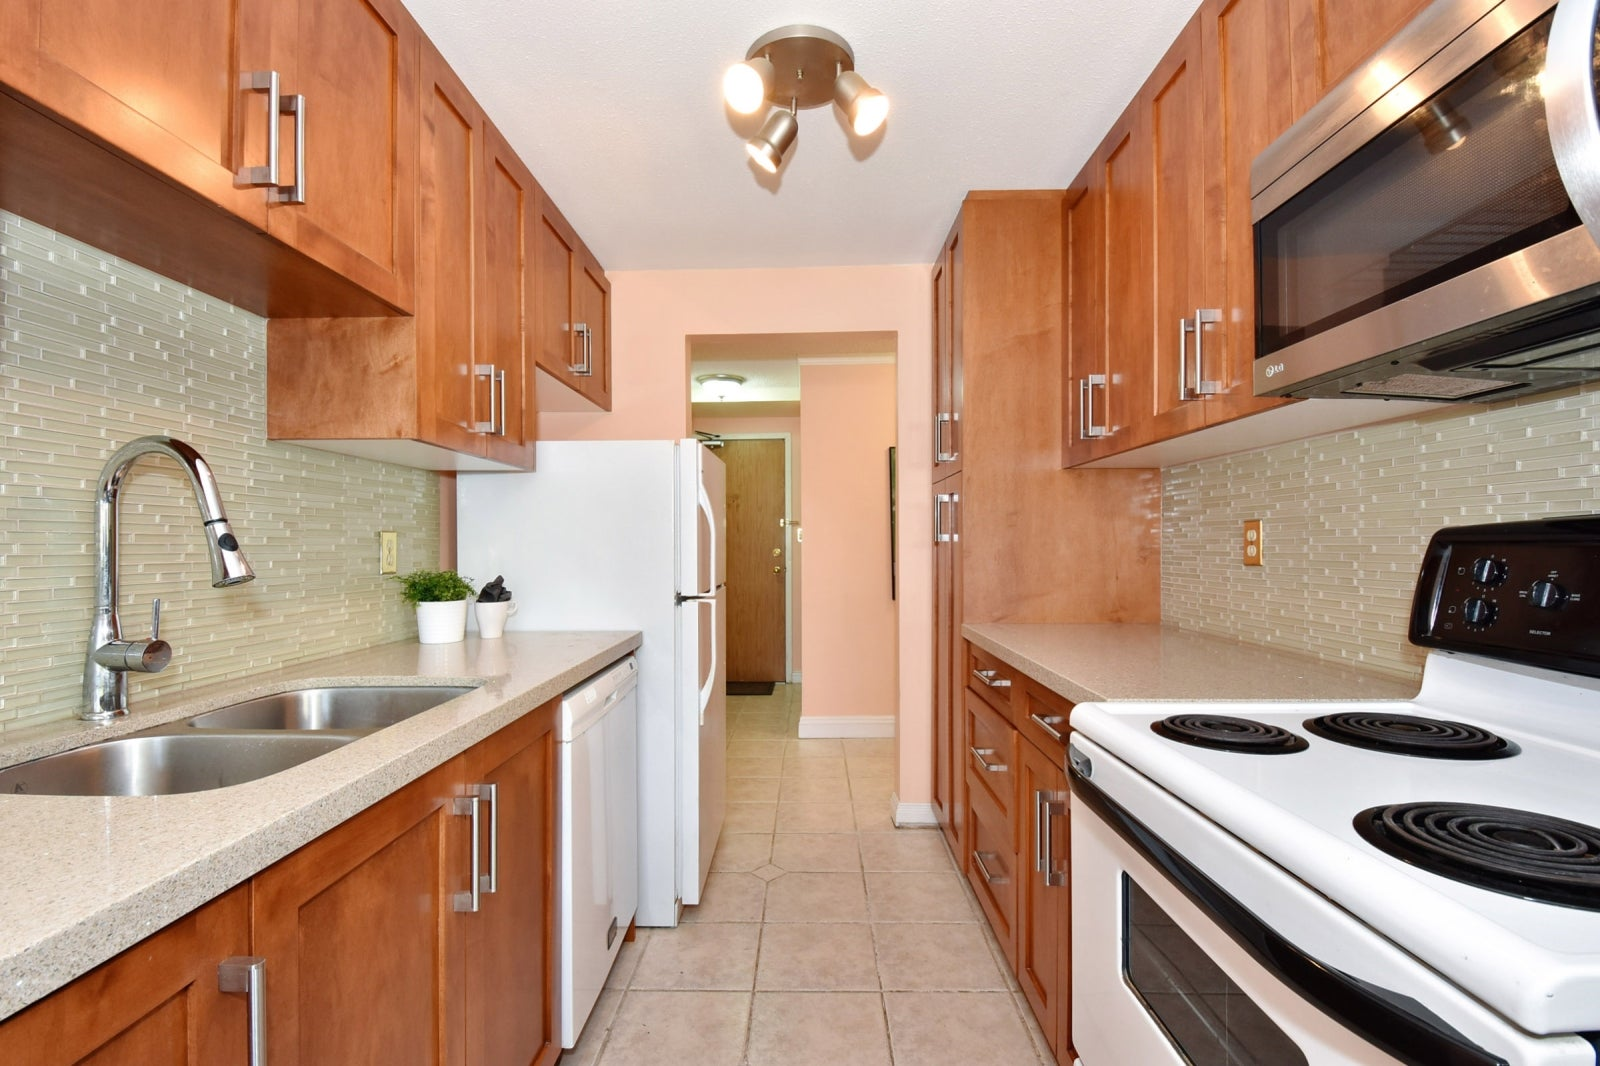 168 7293 MOFFATT ROAD - Brighouse South Apartment/Condo for sale, 2 Bedrooms (R2261480) #11